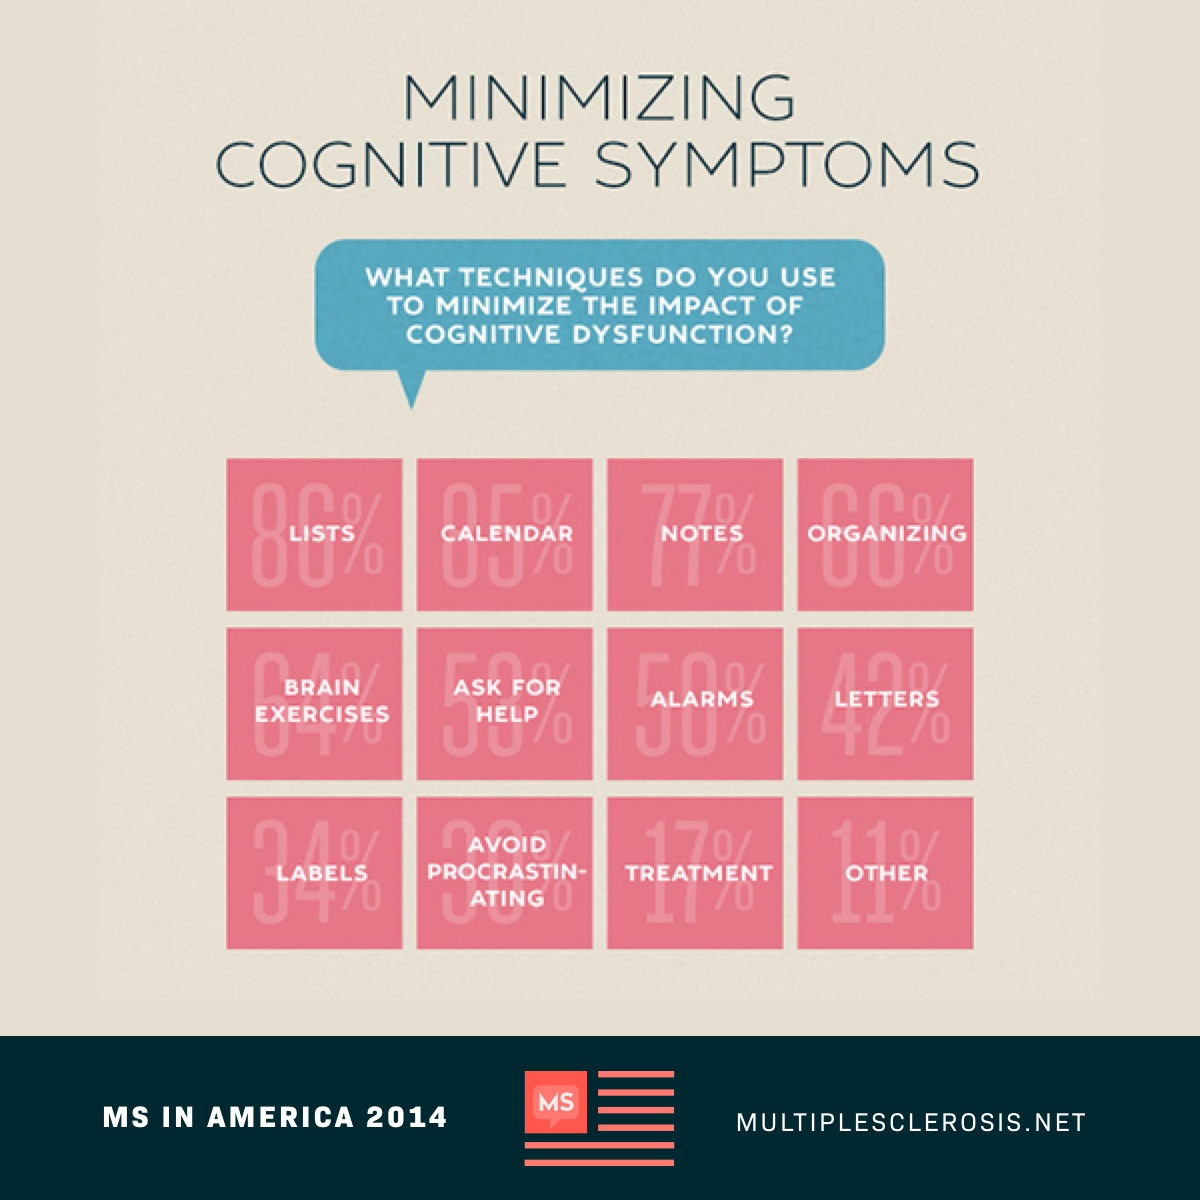 Minimizing Cognitive Symptoms